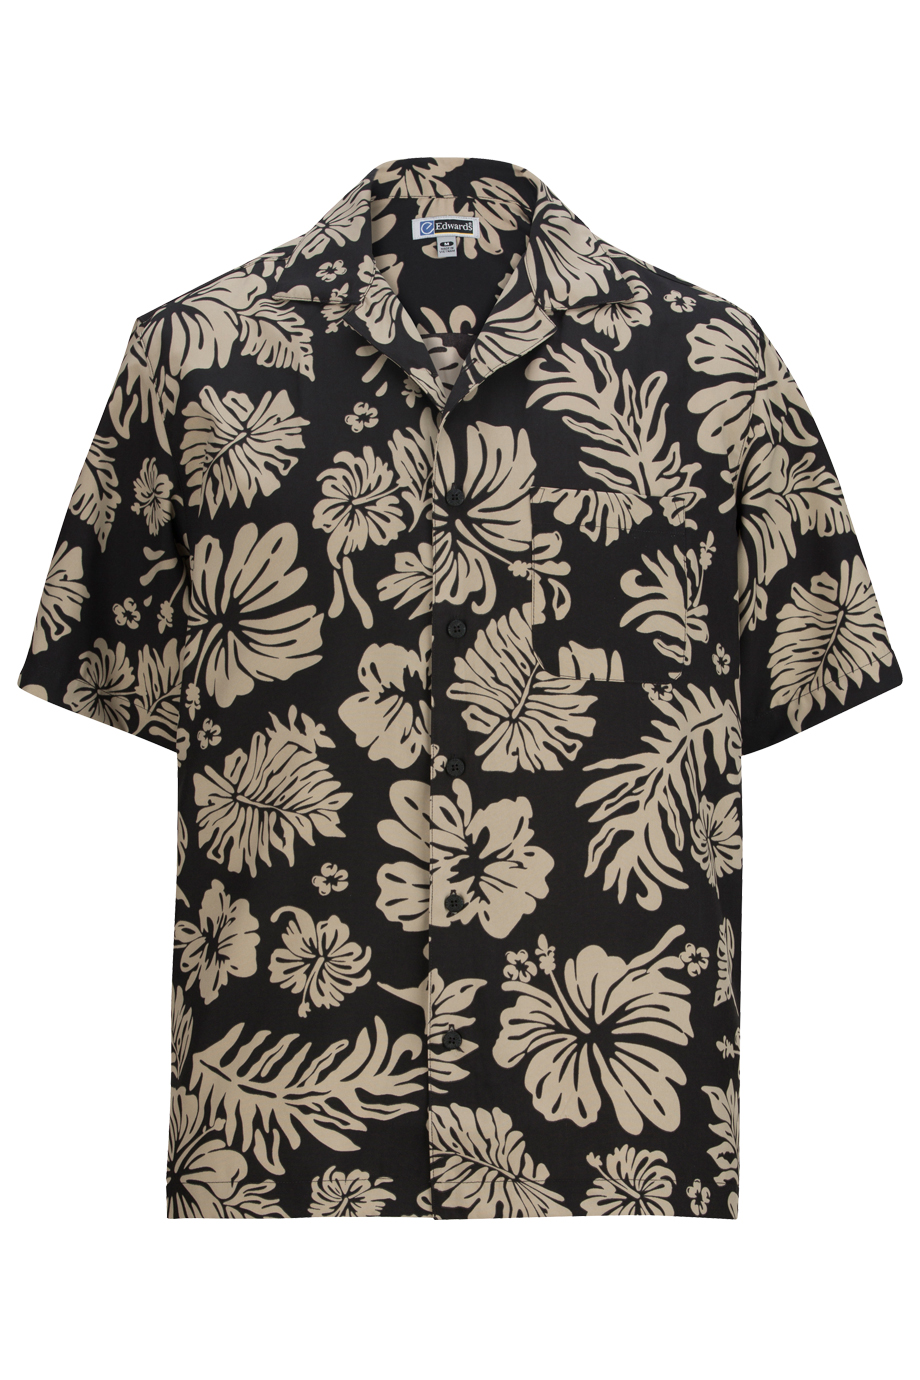 2-Color Hibiscus Camp Shirt 1036